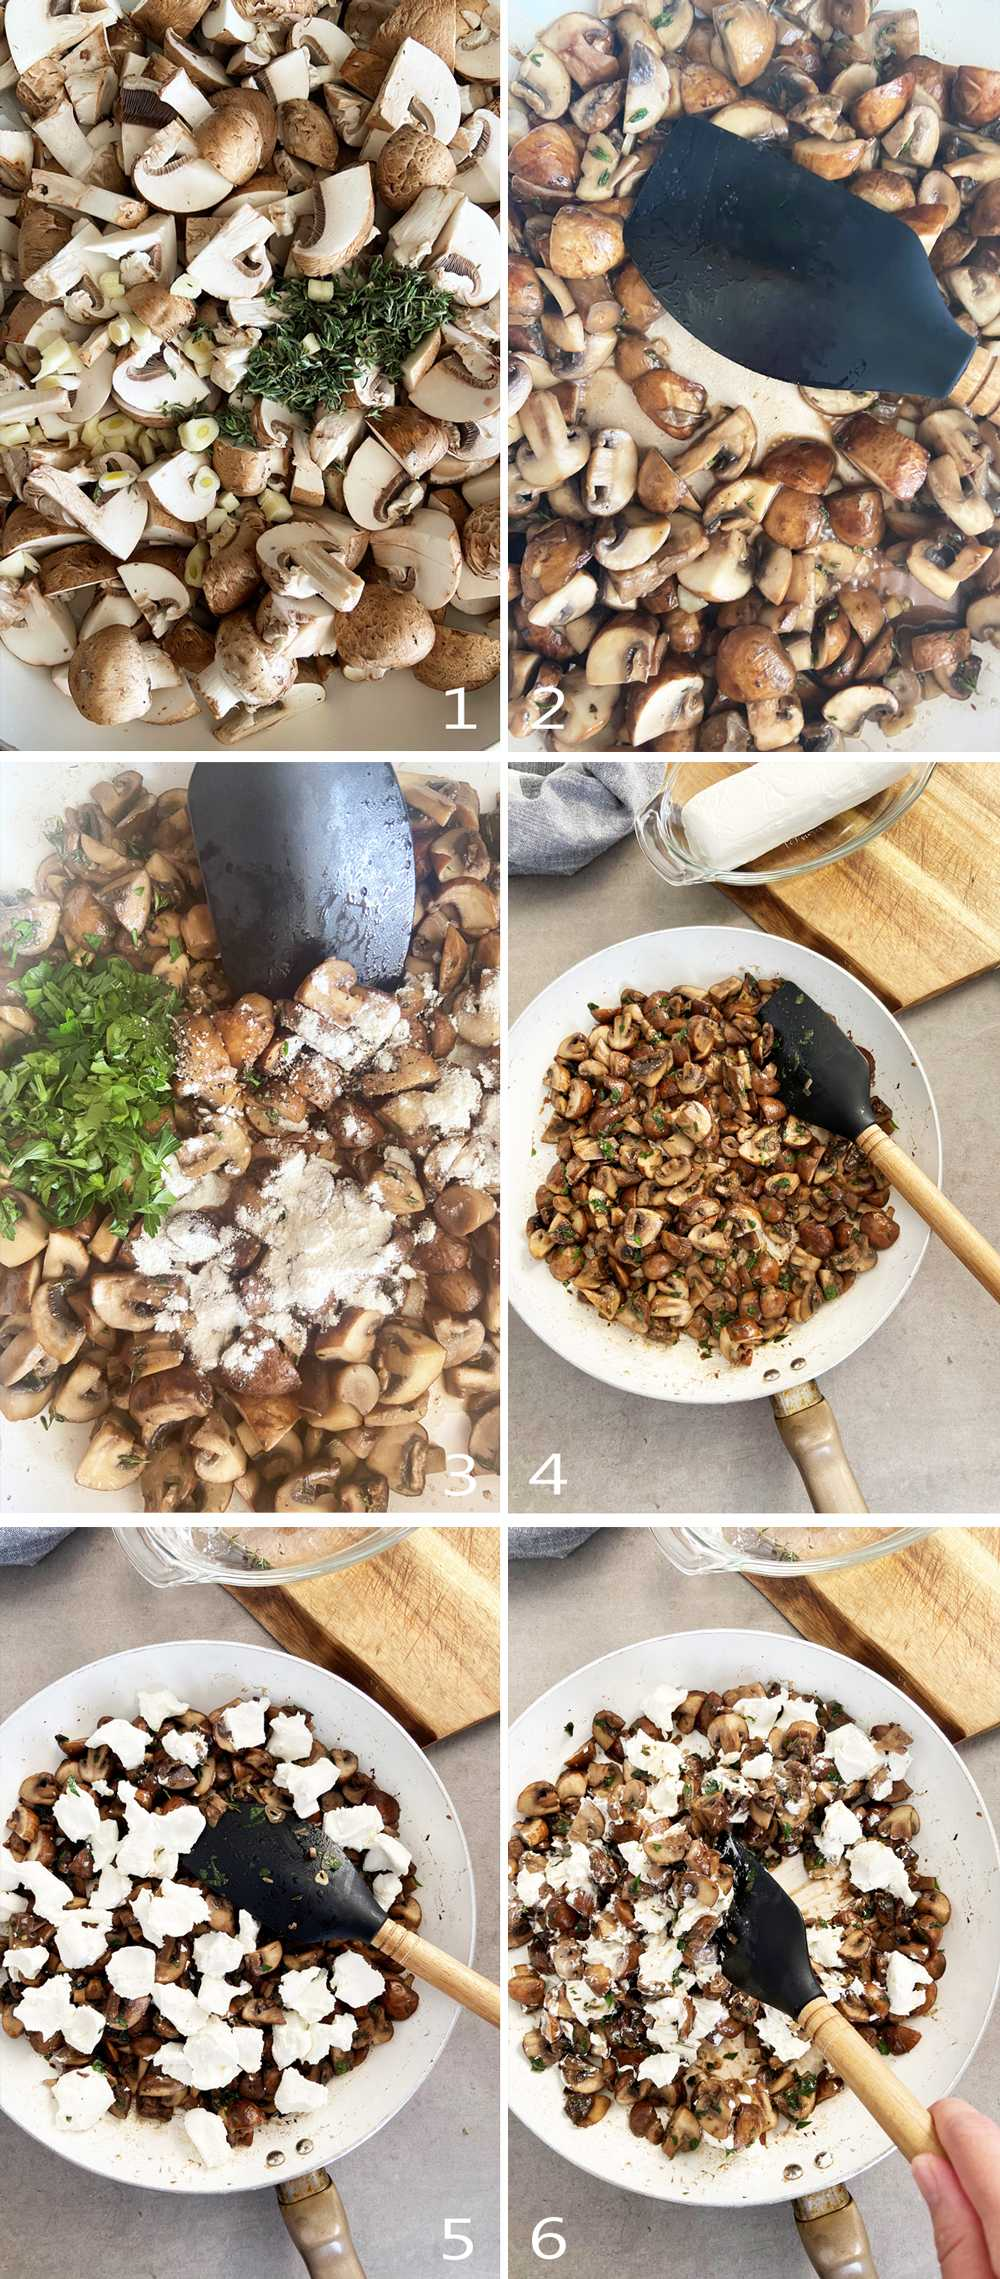 Workflow image grid for goat cheese mushroom filling for strudel